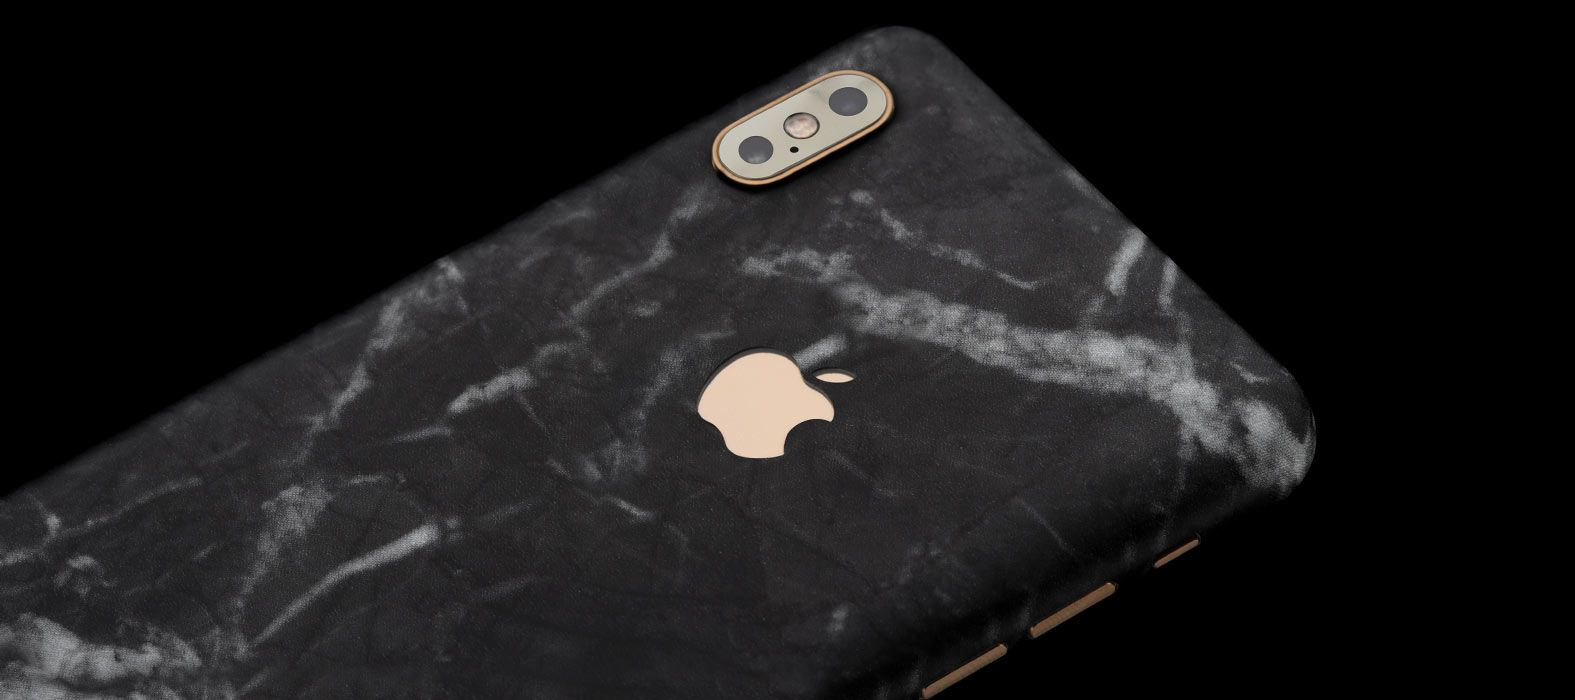 iPhone XS Max Black Leather Skins